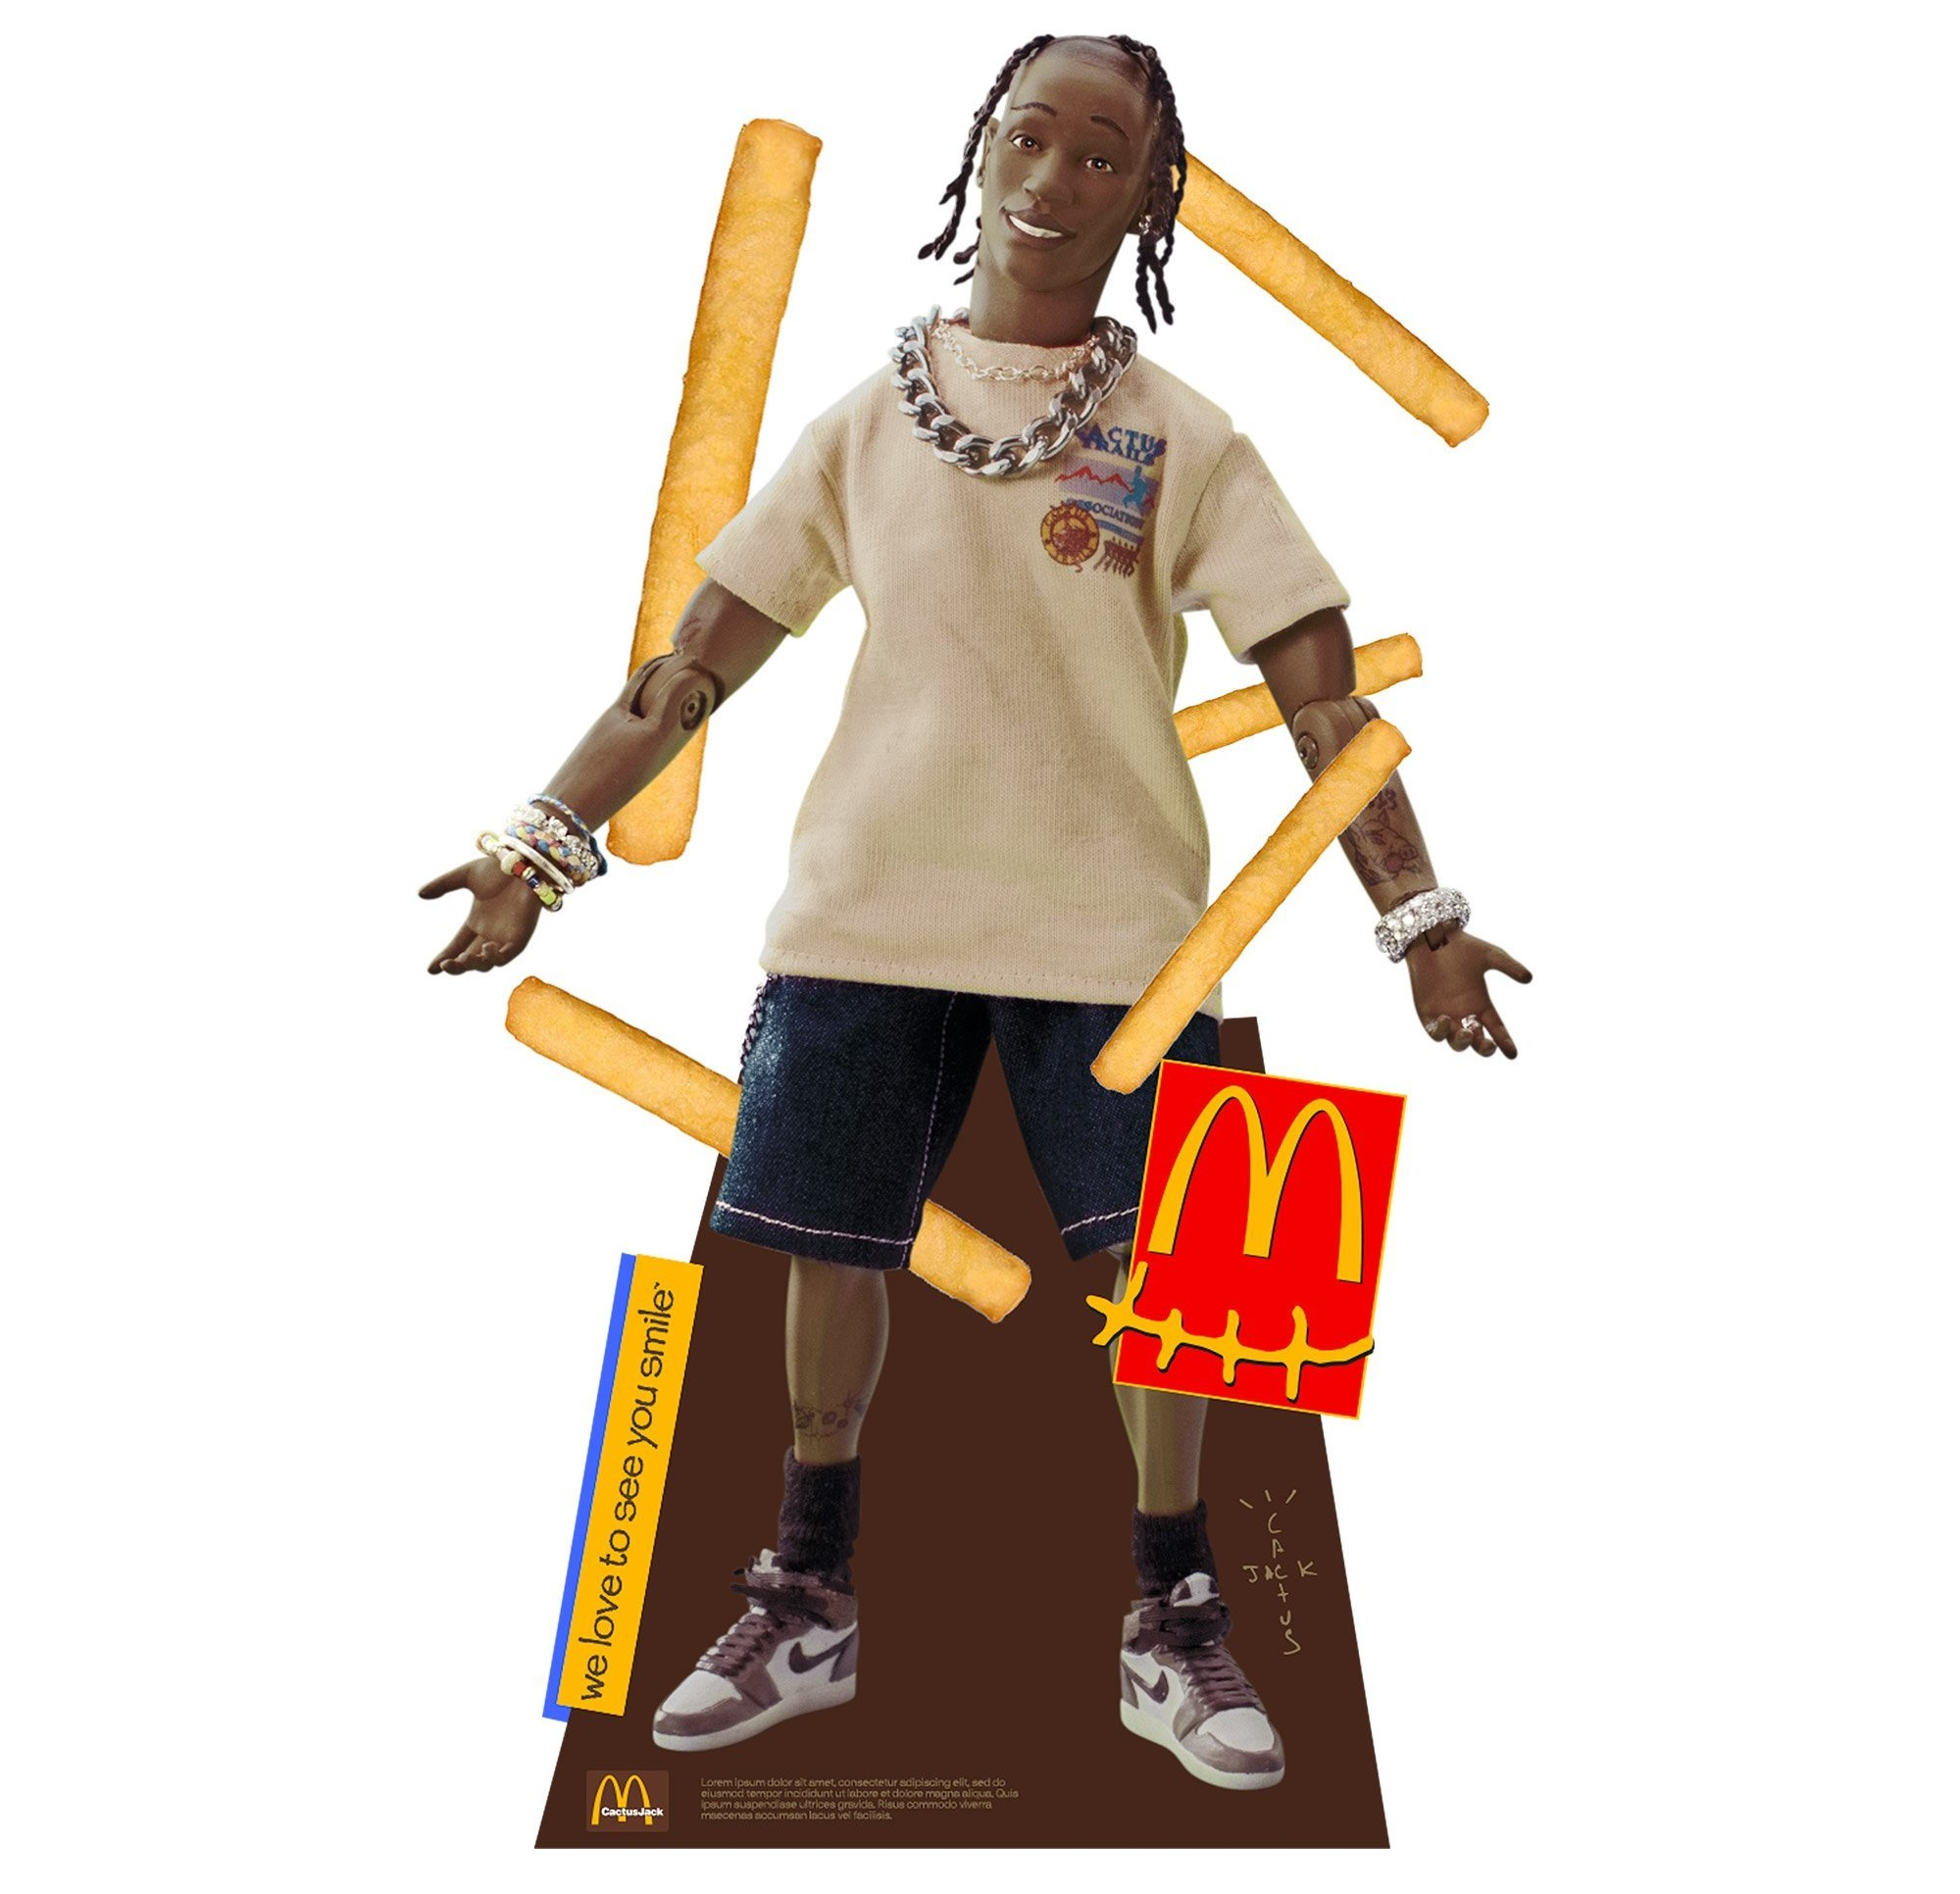 Travis Scott releases McDonald's-themed merch that include a chicken nugget pillow 22